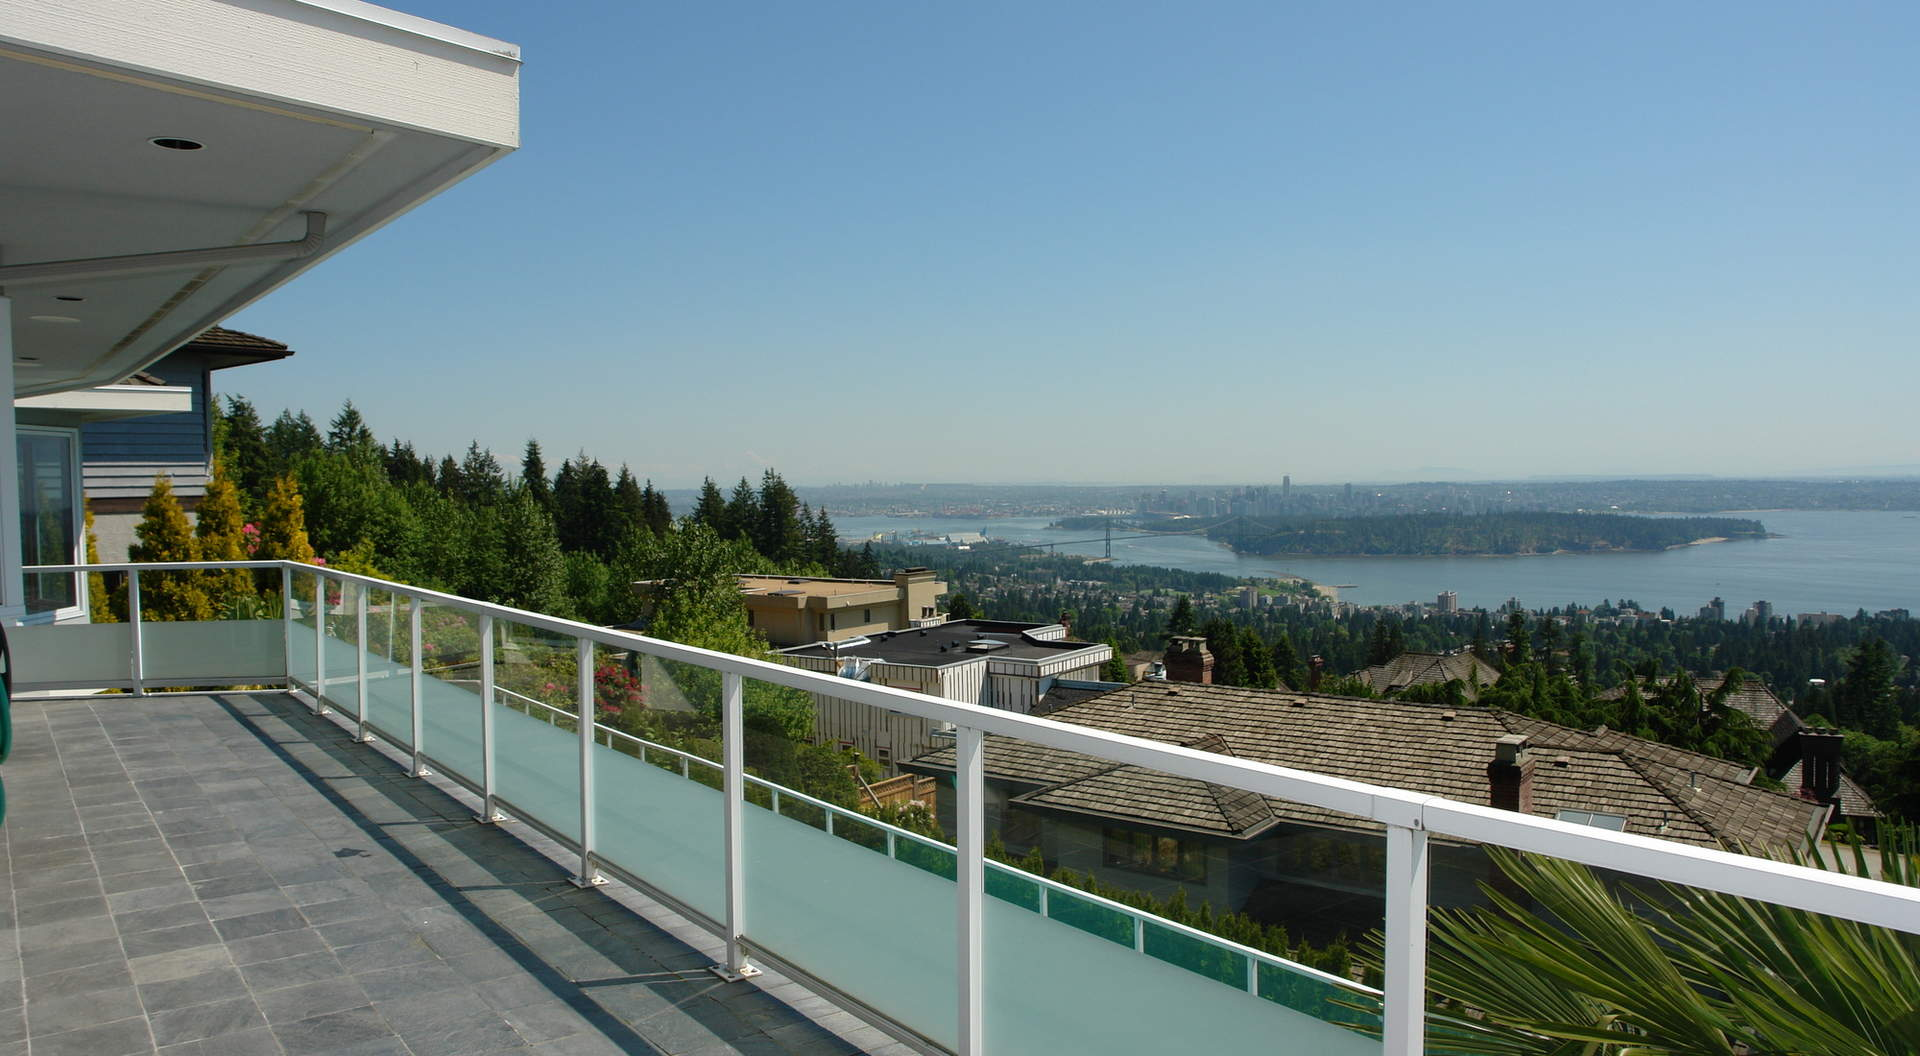 Large Outdoor Sundeck Overlooking Views